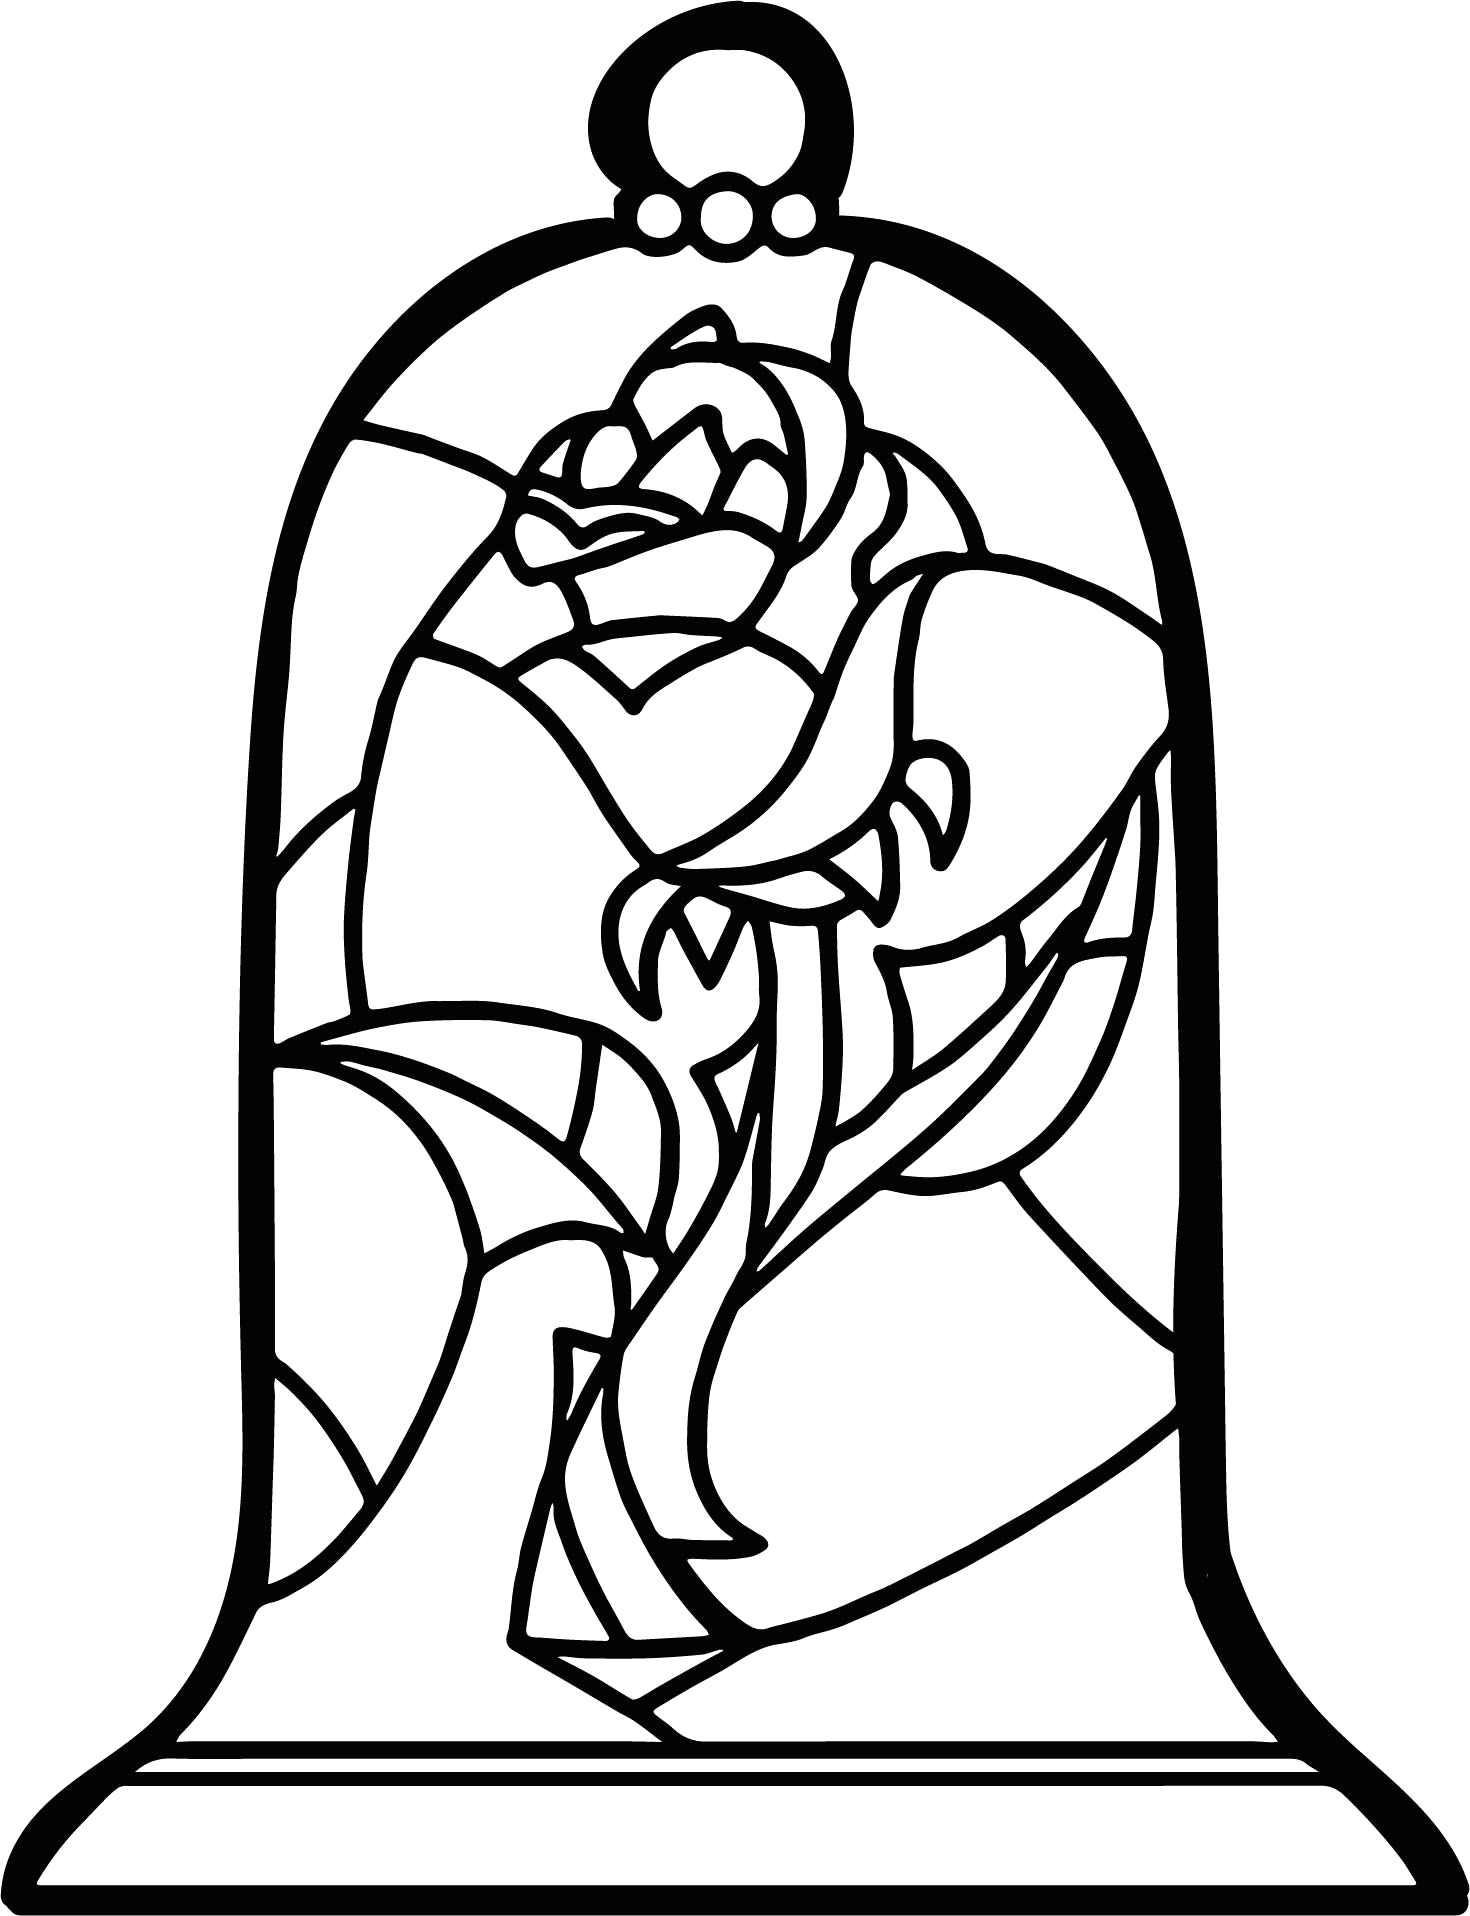 Printable Beauty and the Beast Rose Coloring Pages Stained Glass Beauty and the Beast Rose Coloring Pages